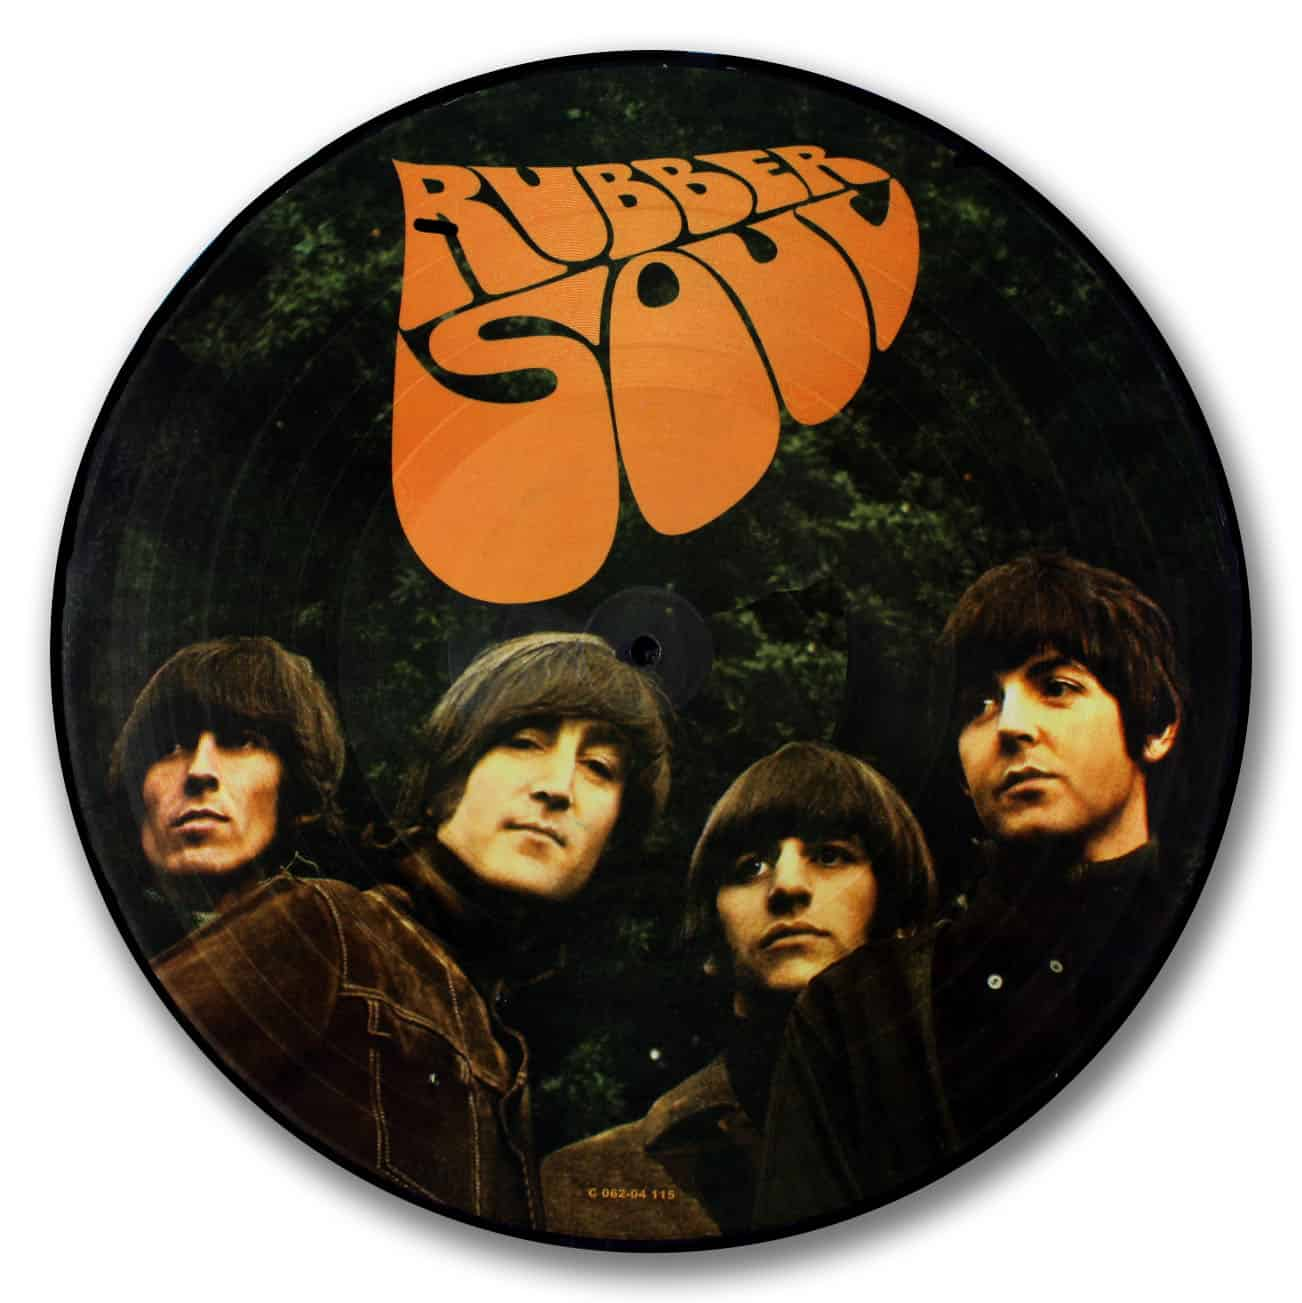 The Beatles Rubber Soul The Vinyl Underground